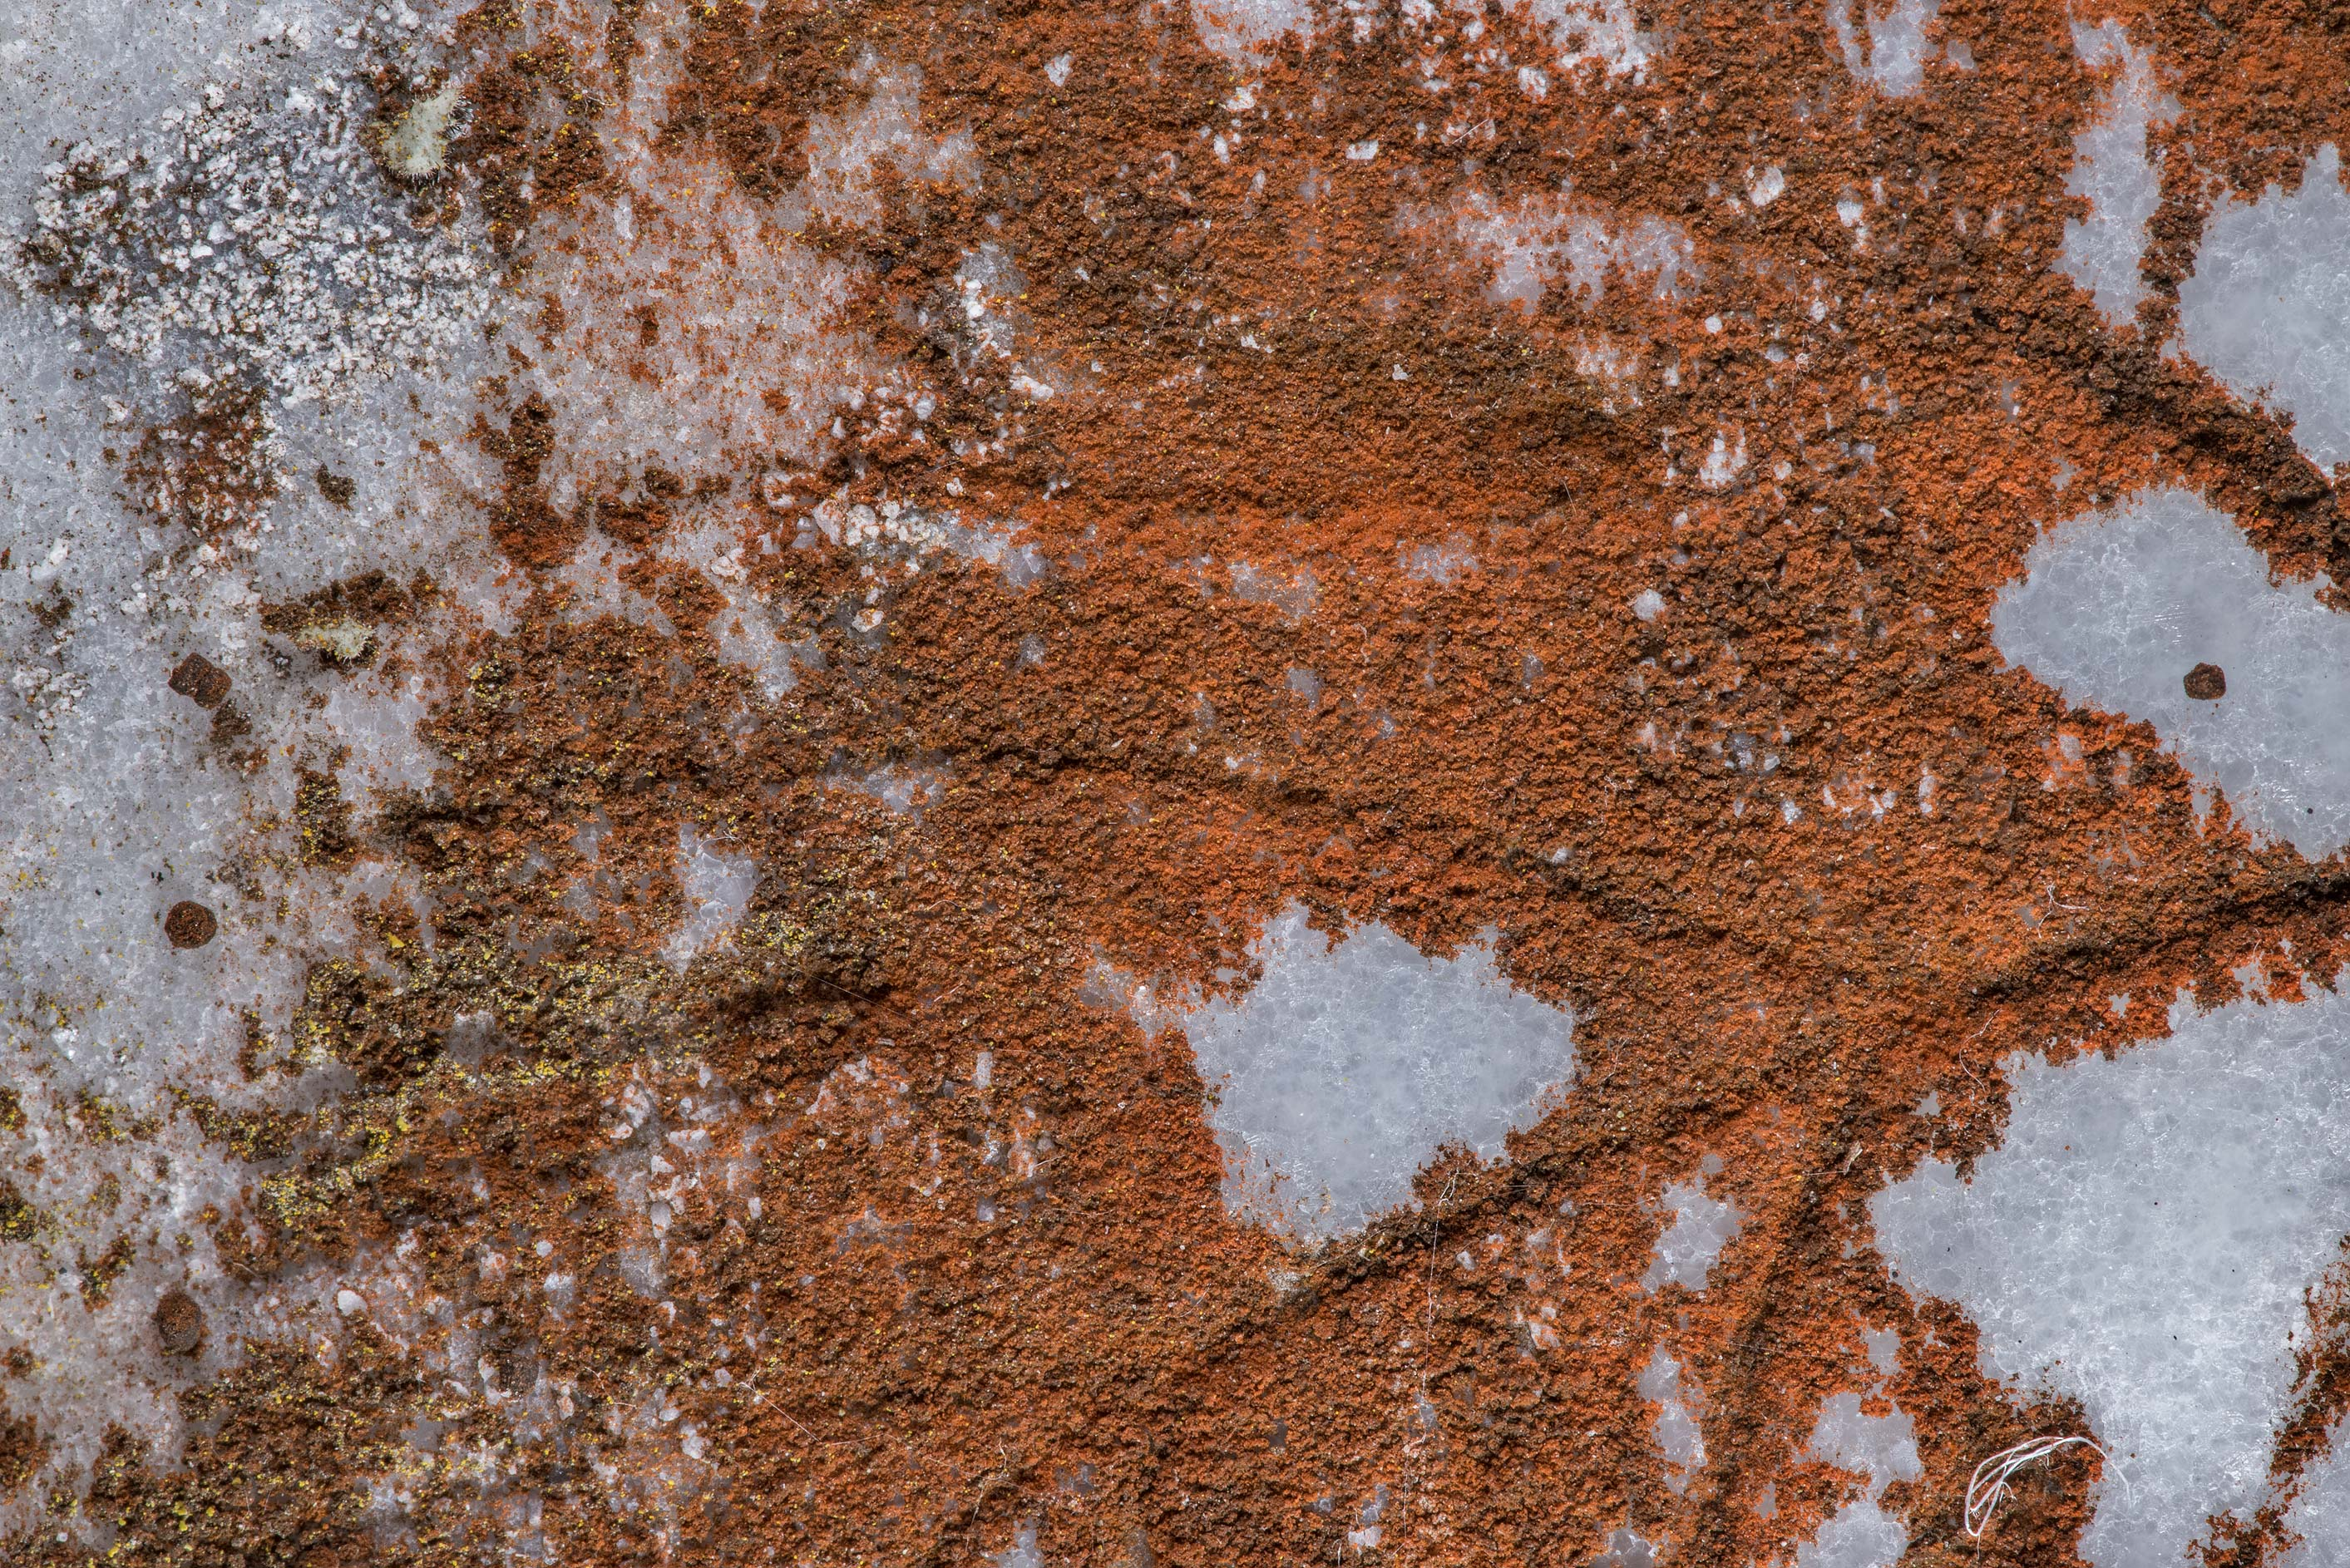 Some rusty red powdery lichen on marble surface...Cemetery near Huntsville, Texas